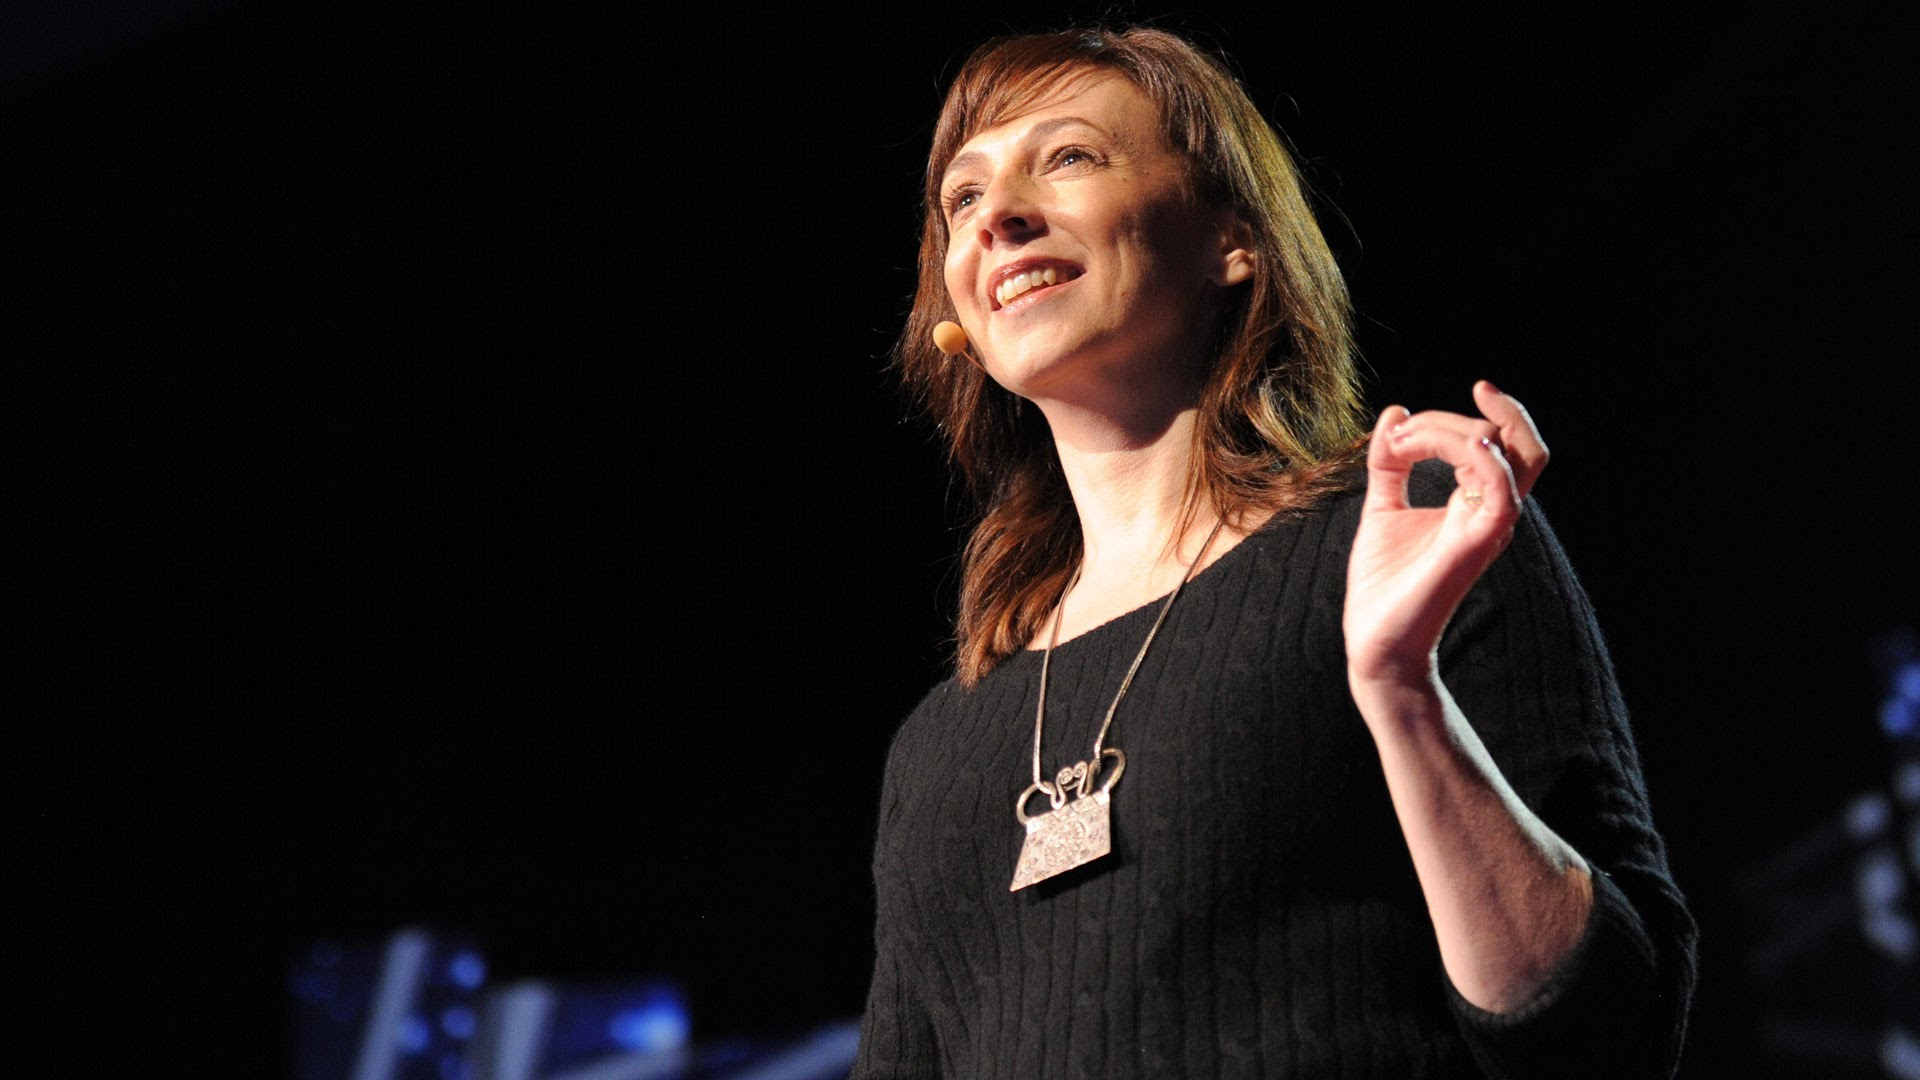 「Susan Cain:內向者的力量」- The Power of Introverts